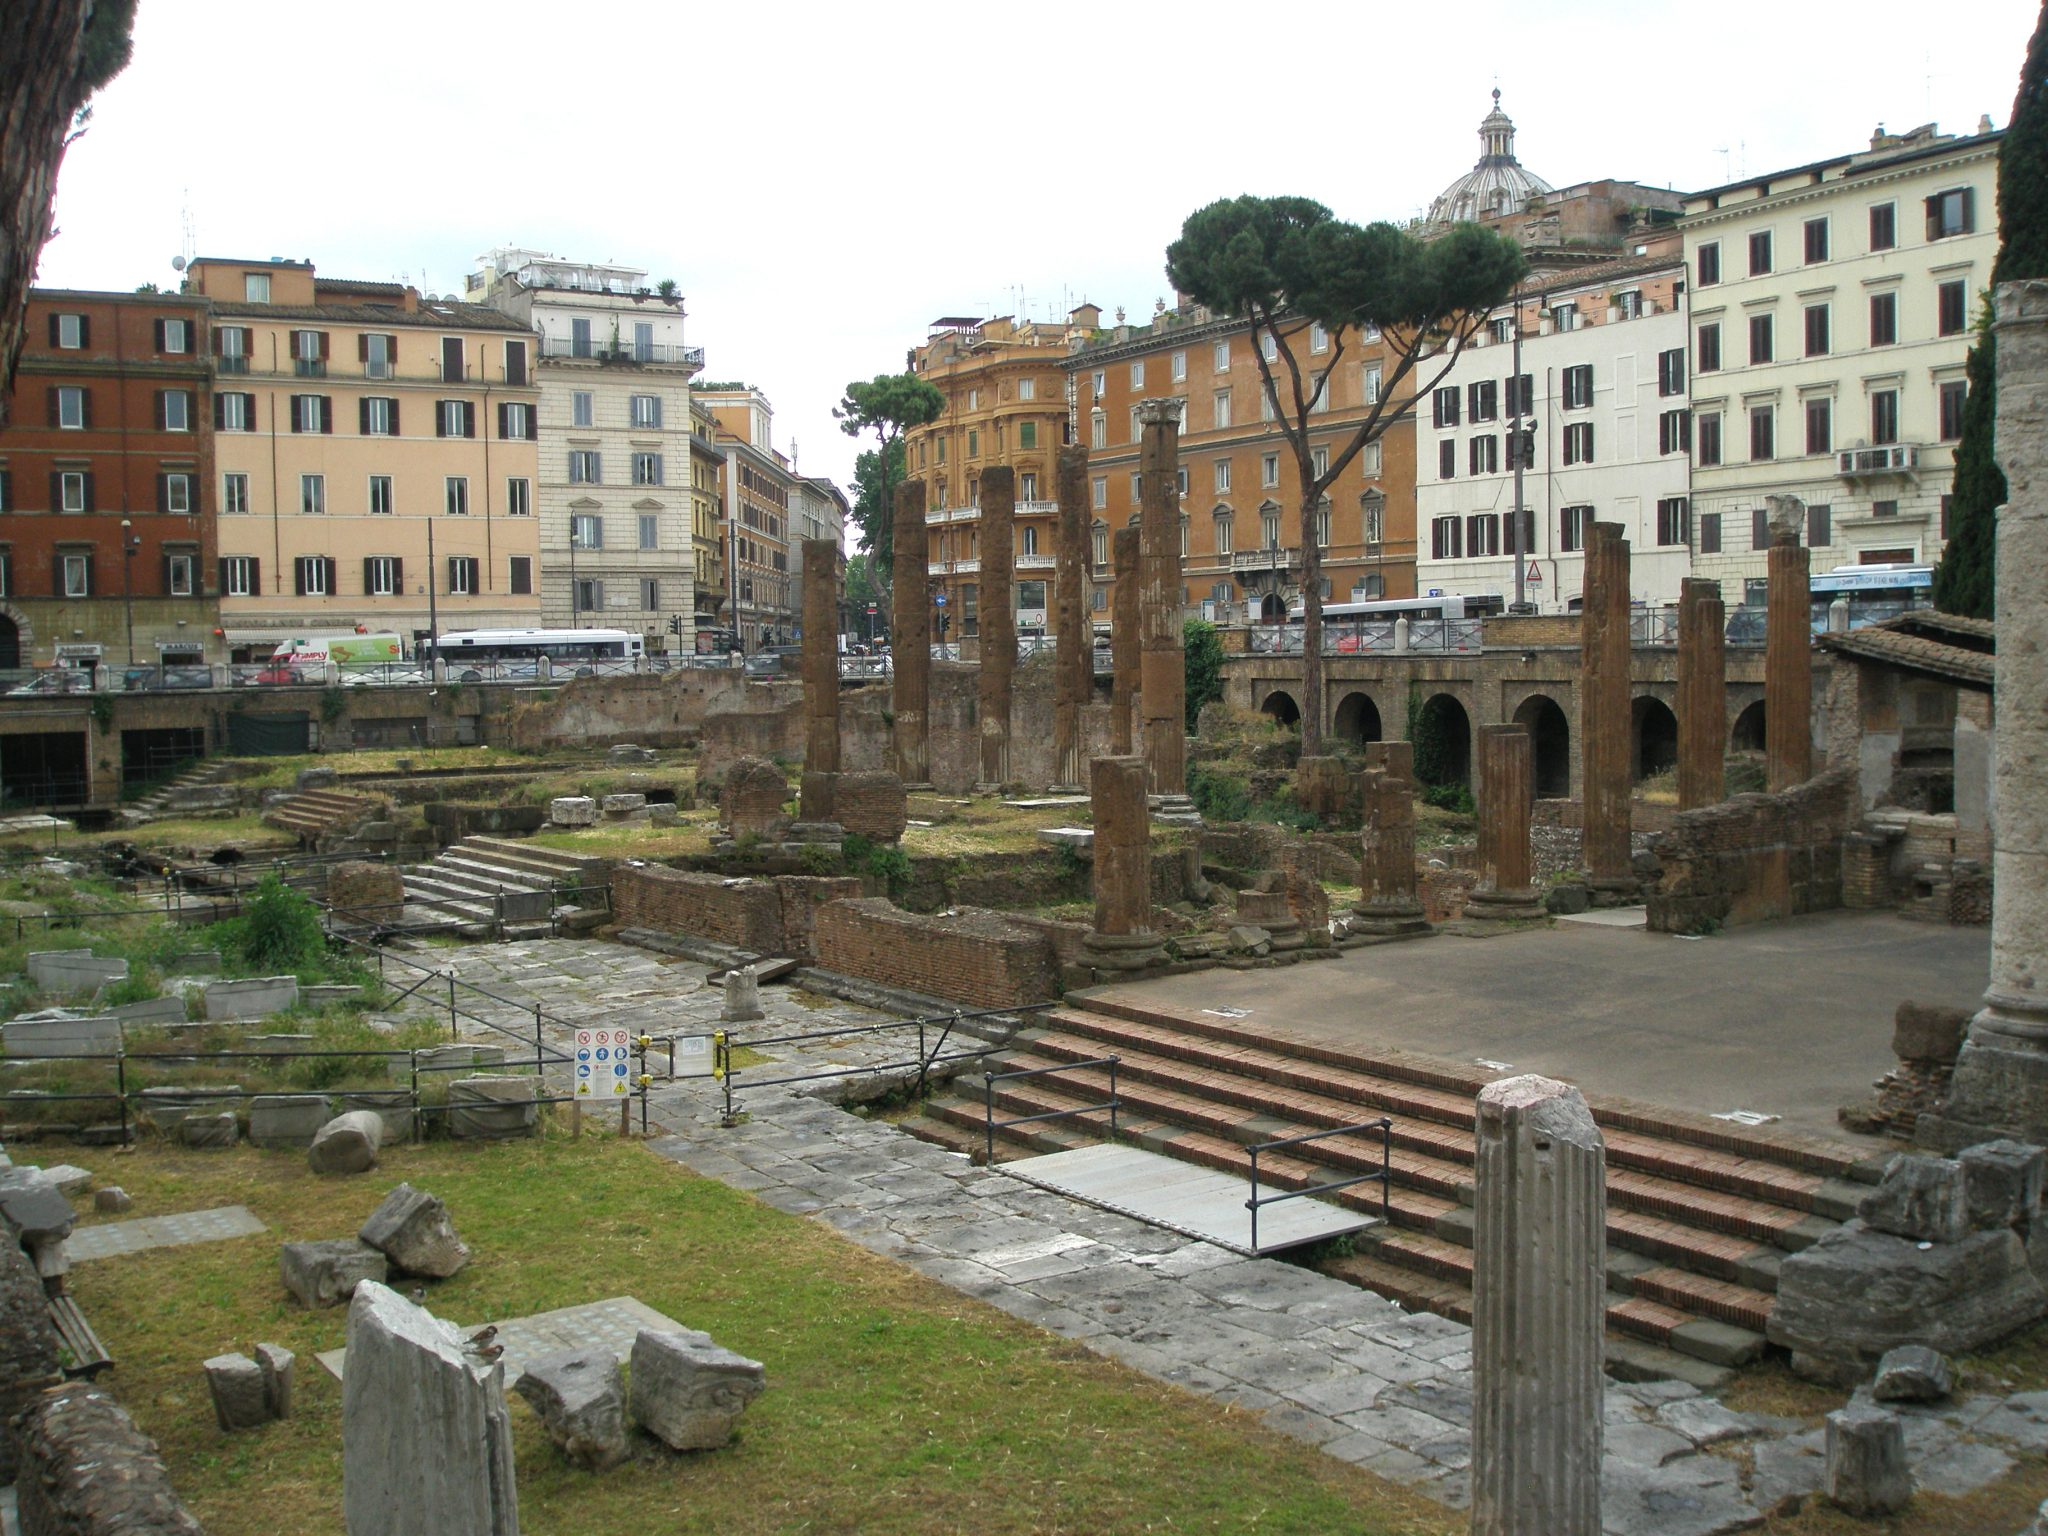 The Sacred Area of Largo Argentina. The discovery of these ruins was a great surprise. In 1926, during demolitions ordered by Benito Mussolini, workers began to unearth the remains of four, ancient Roman temples.